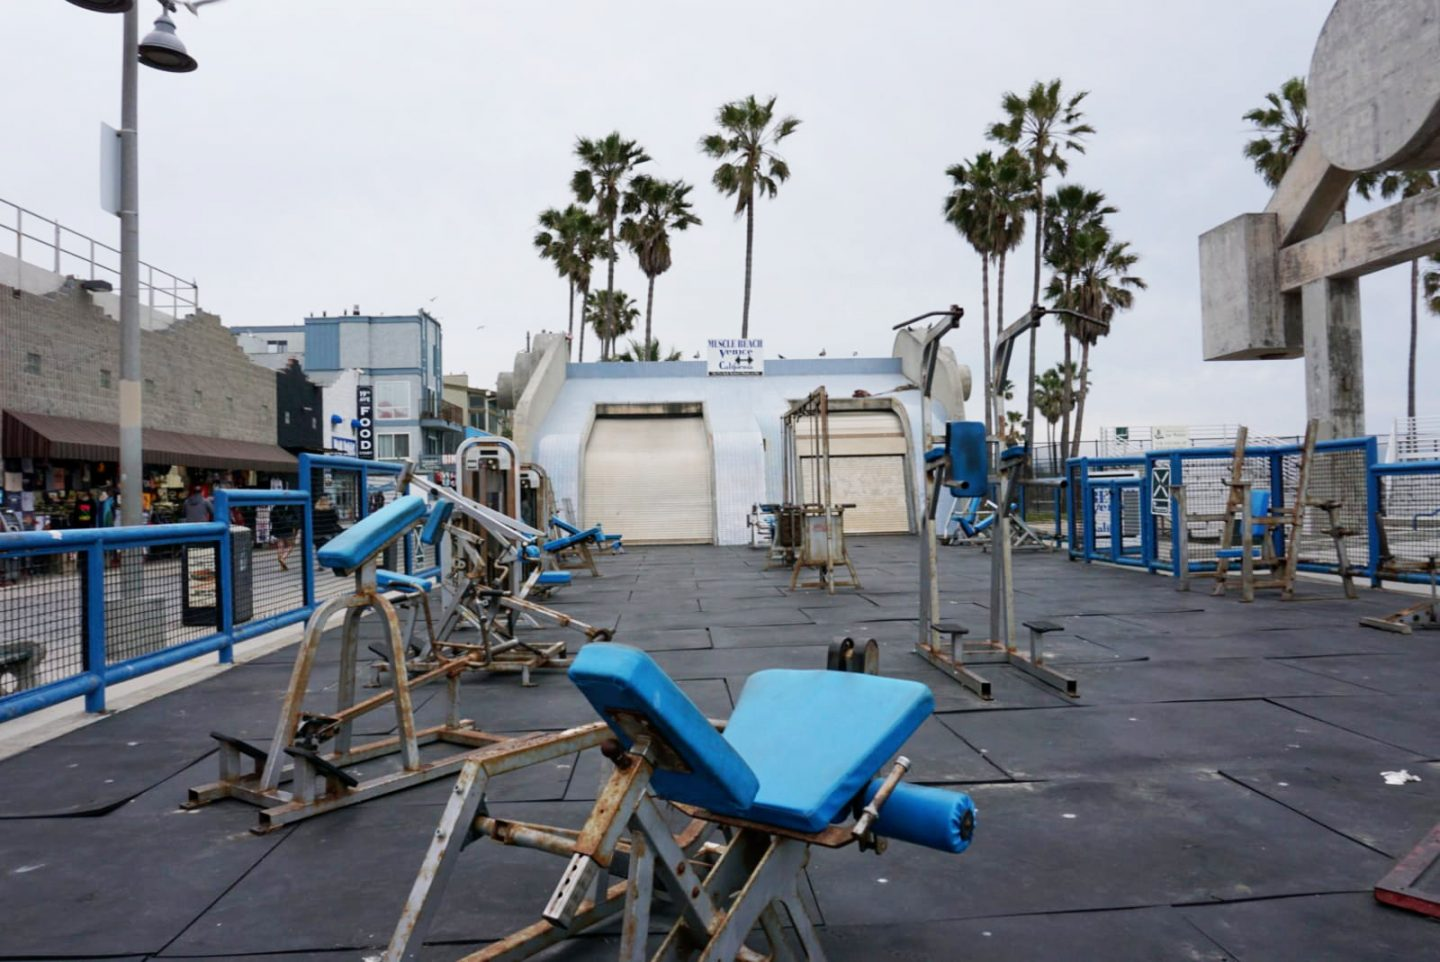 los angeles - muscle beach inpiration nl